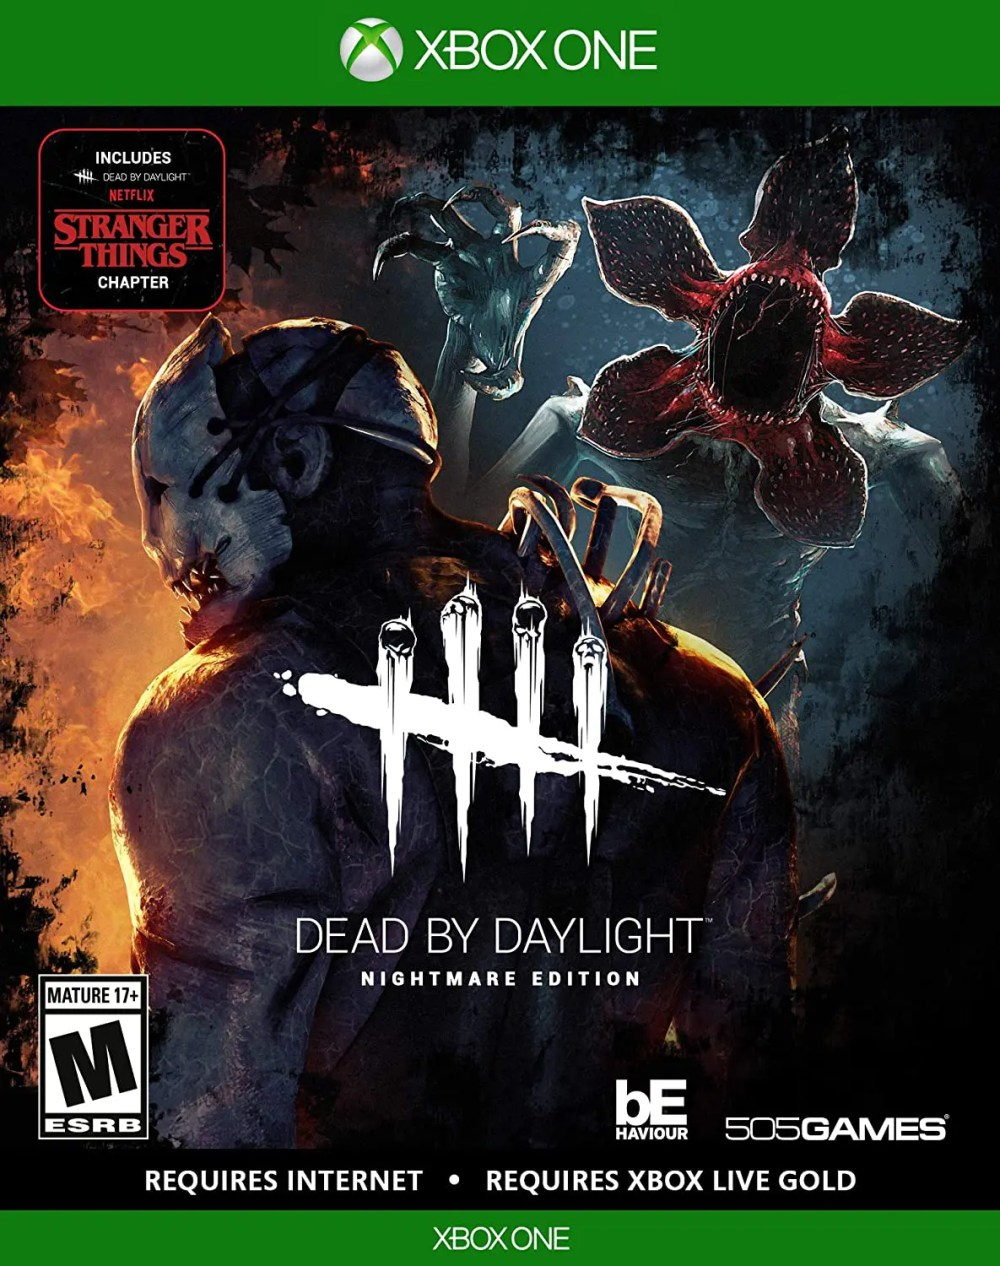 Dead by Daylight (Nightmare Edition) for Xbox One